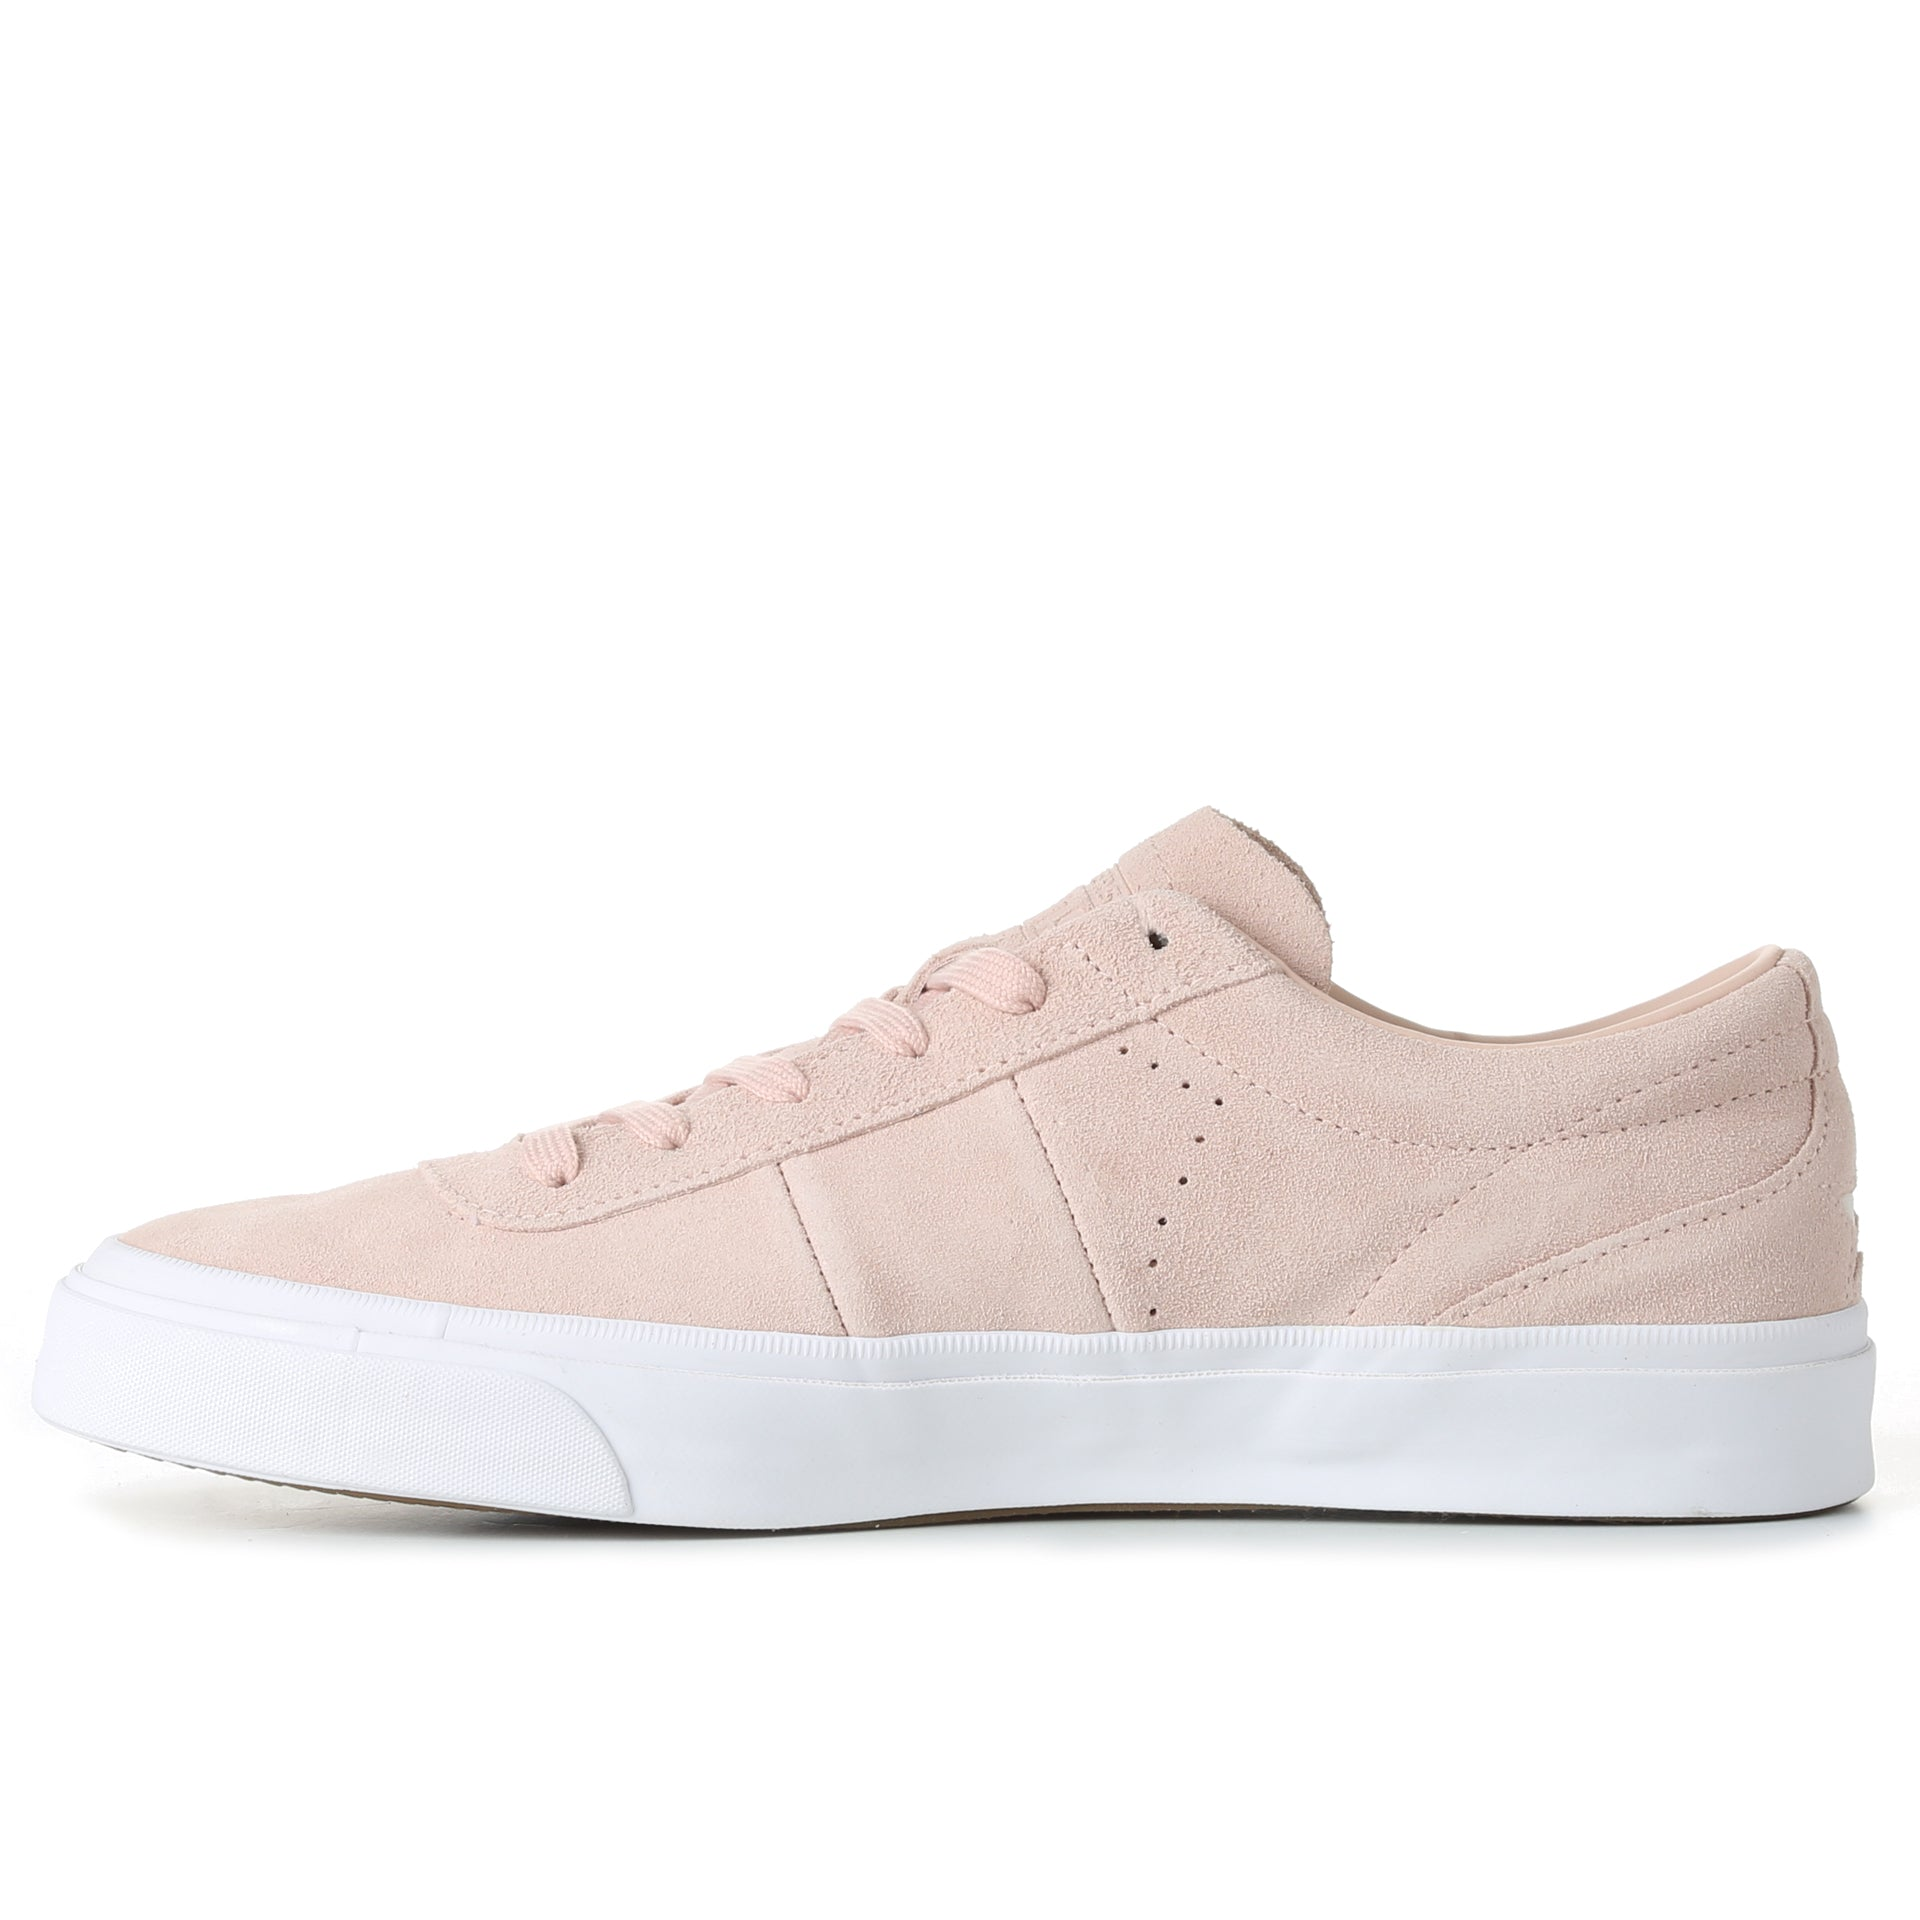 13263191d285 Converse One Star CC Oiled Suede Low Top - Dusk Pink - New Star